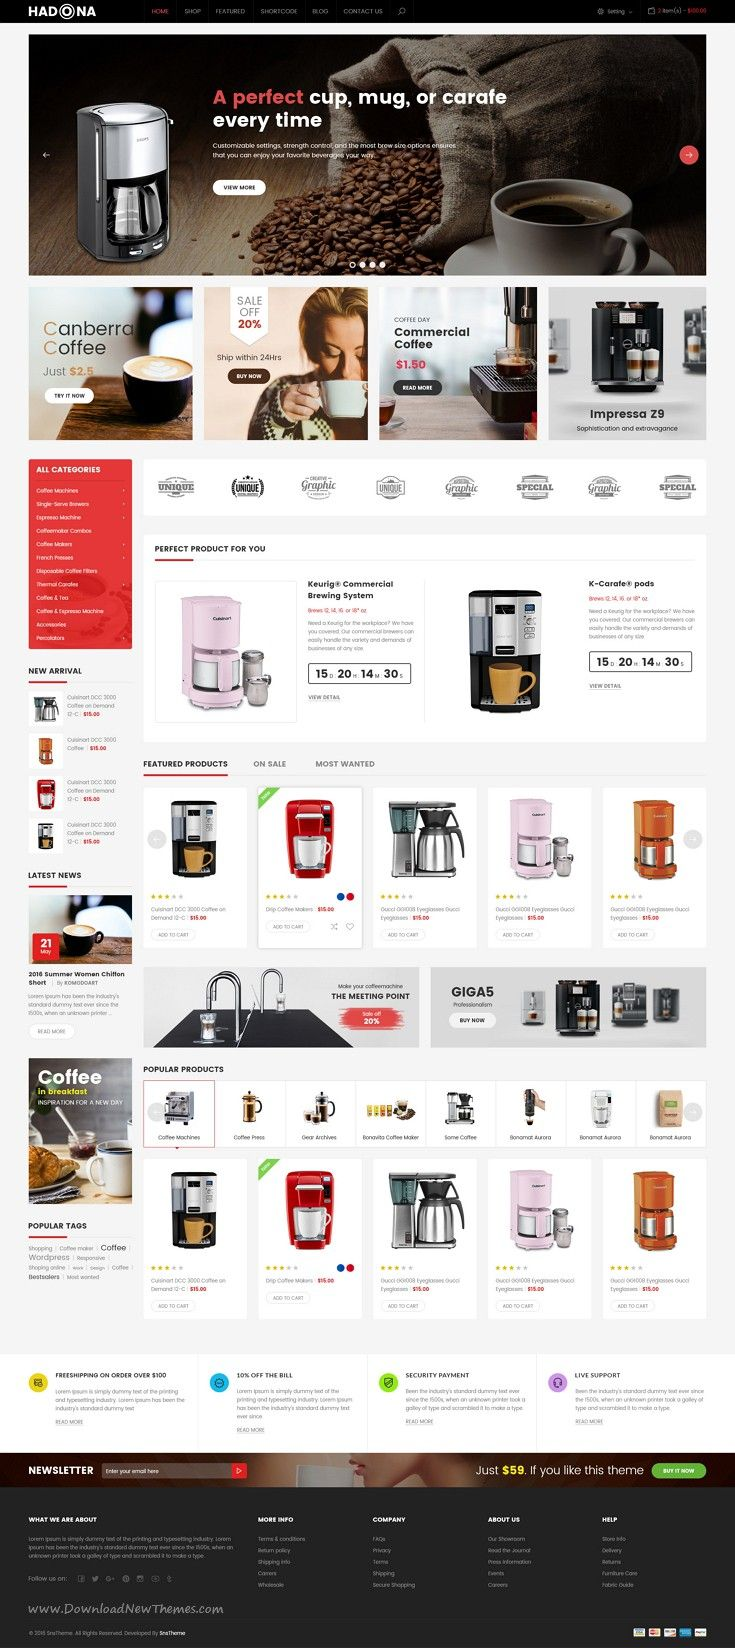 Hadona is great premium PSD #template for electronics #shop #eCommerce website. Download Now!